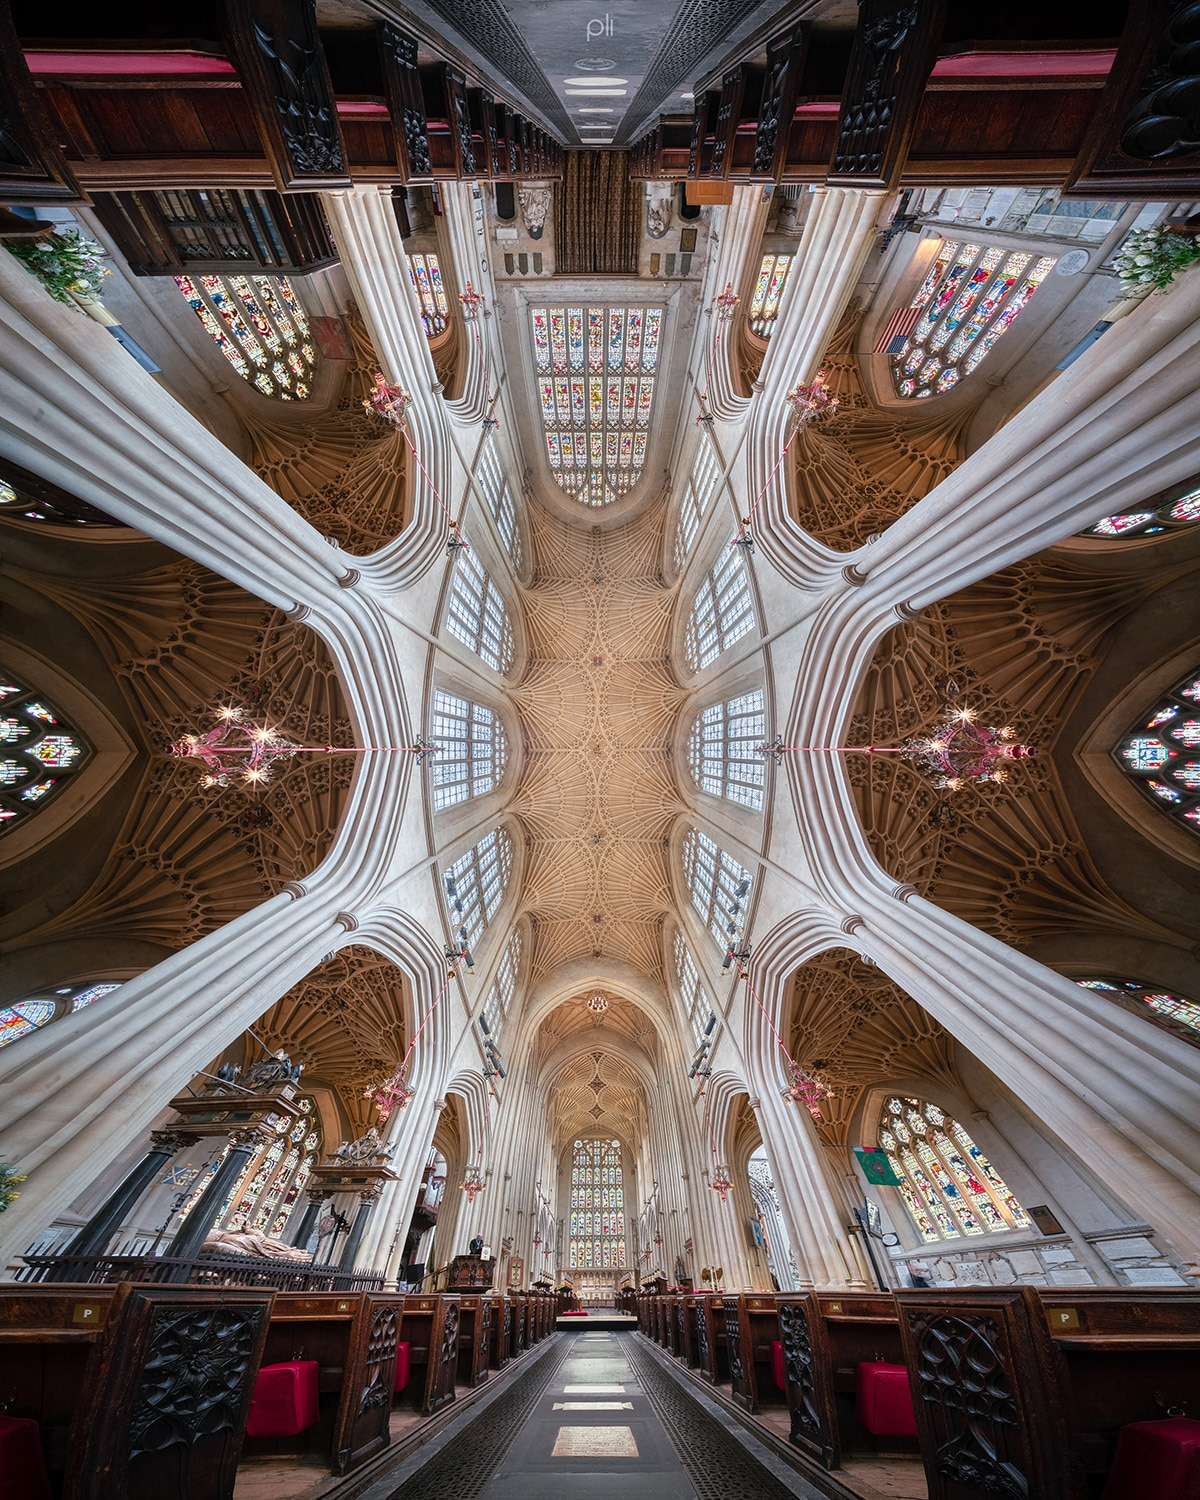 Panos of Church Interiors by Peter Li